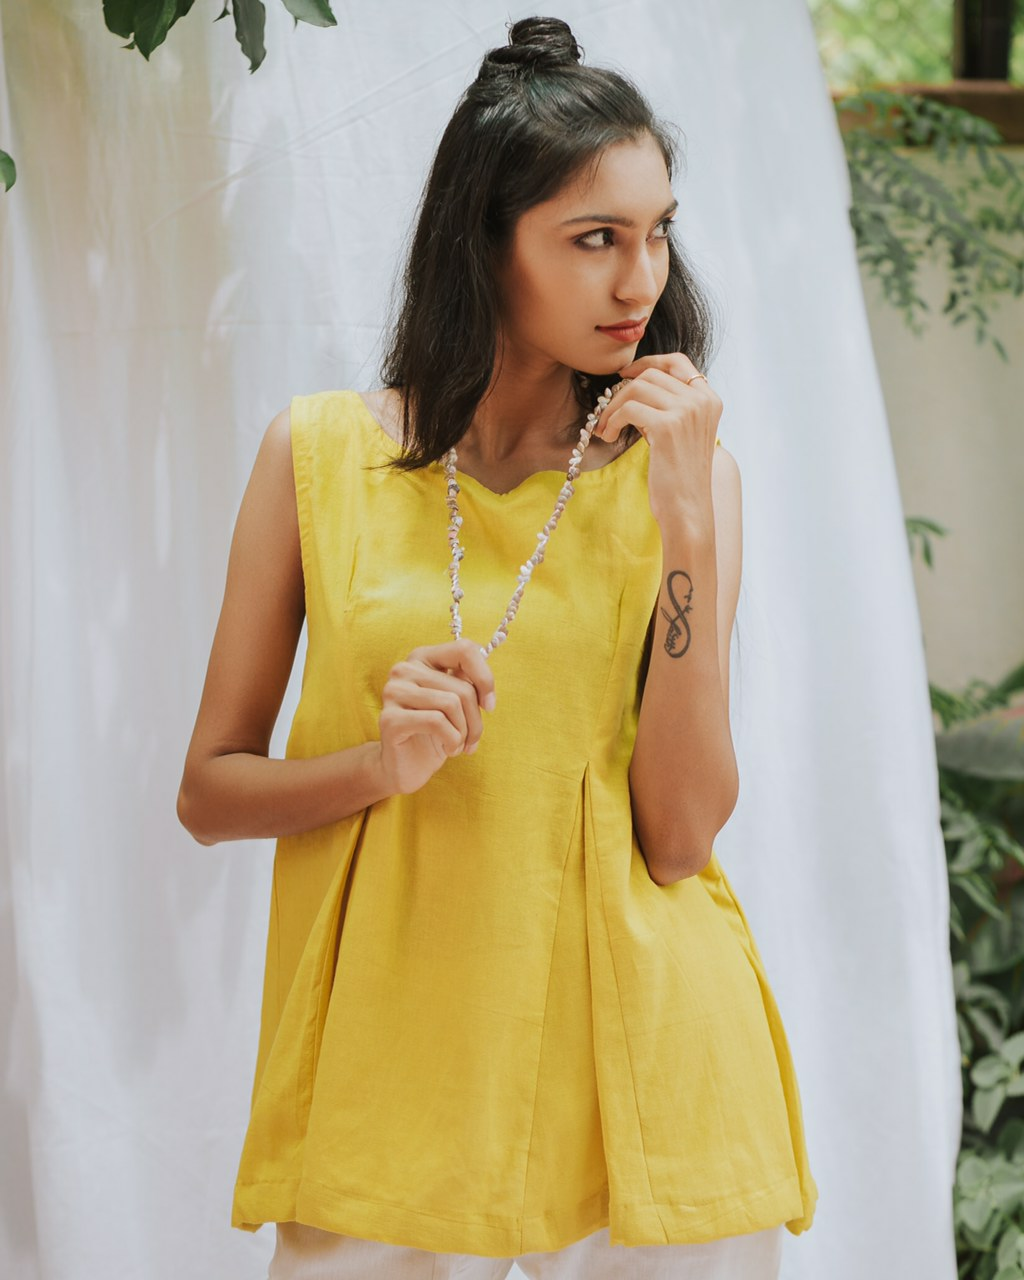 Pleated yellow top